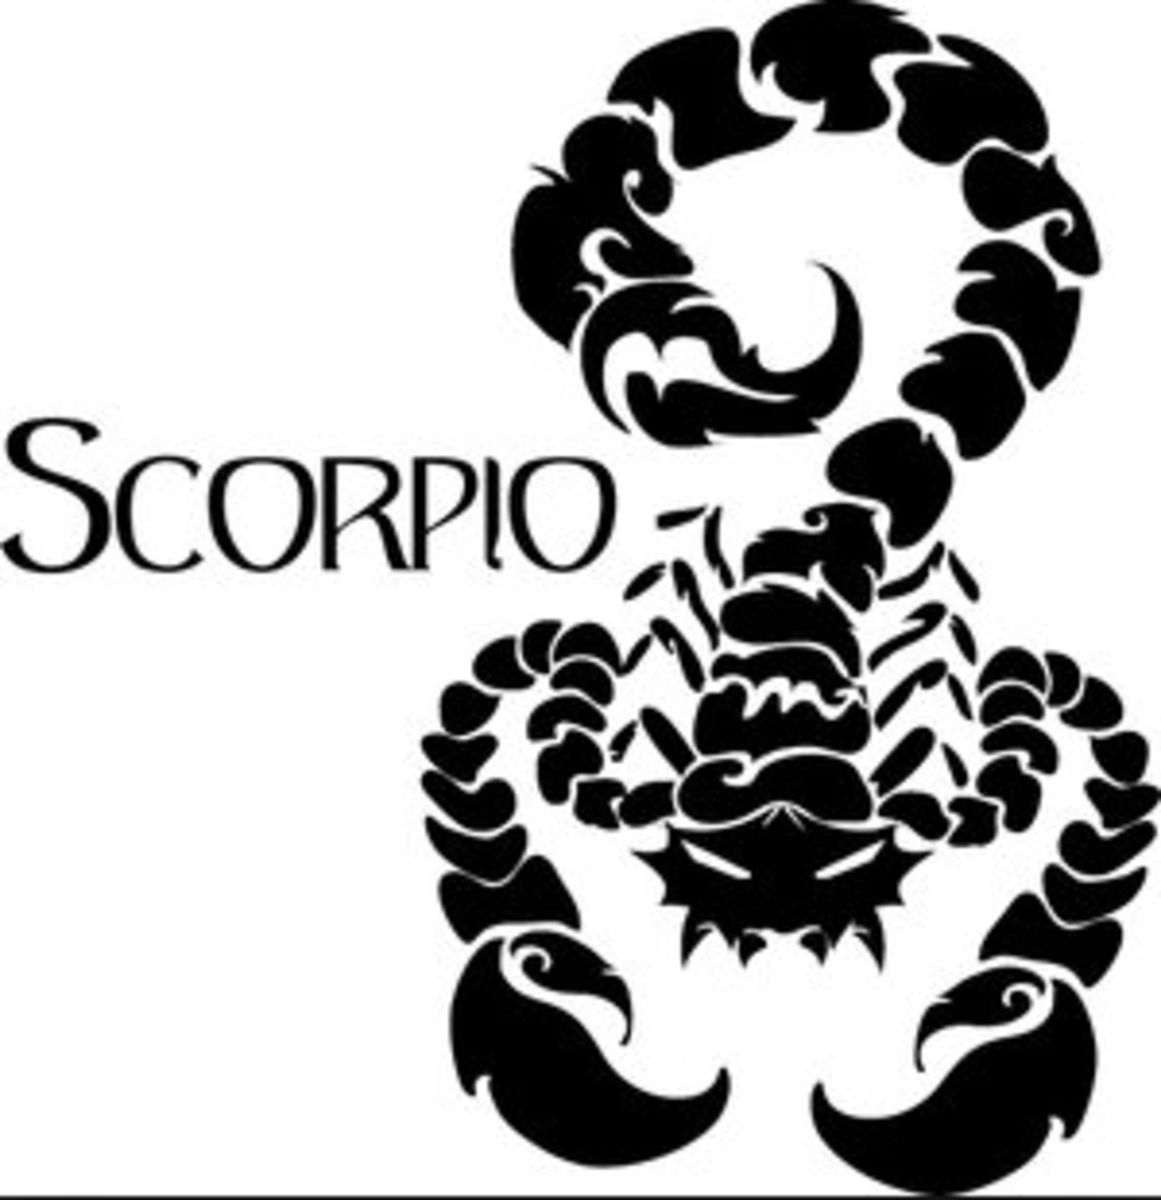 working-for-a-scorpio-boss-tread-lightly